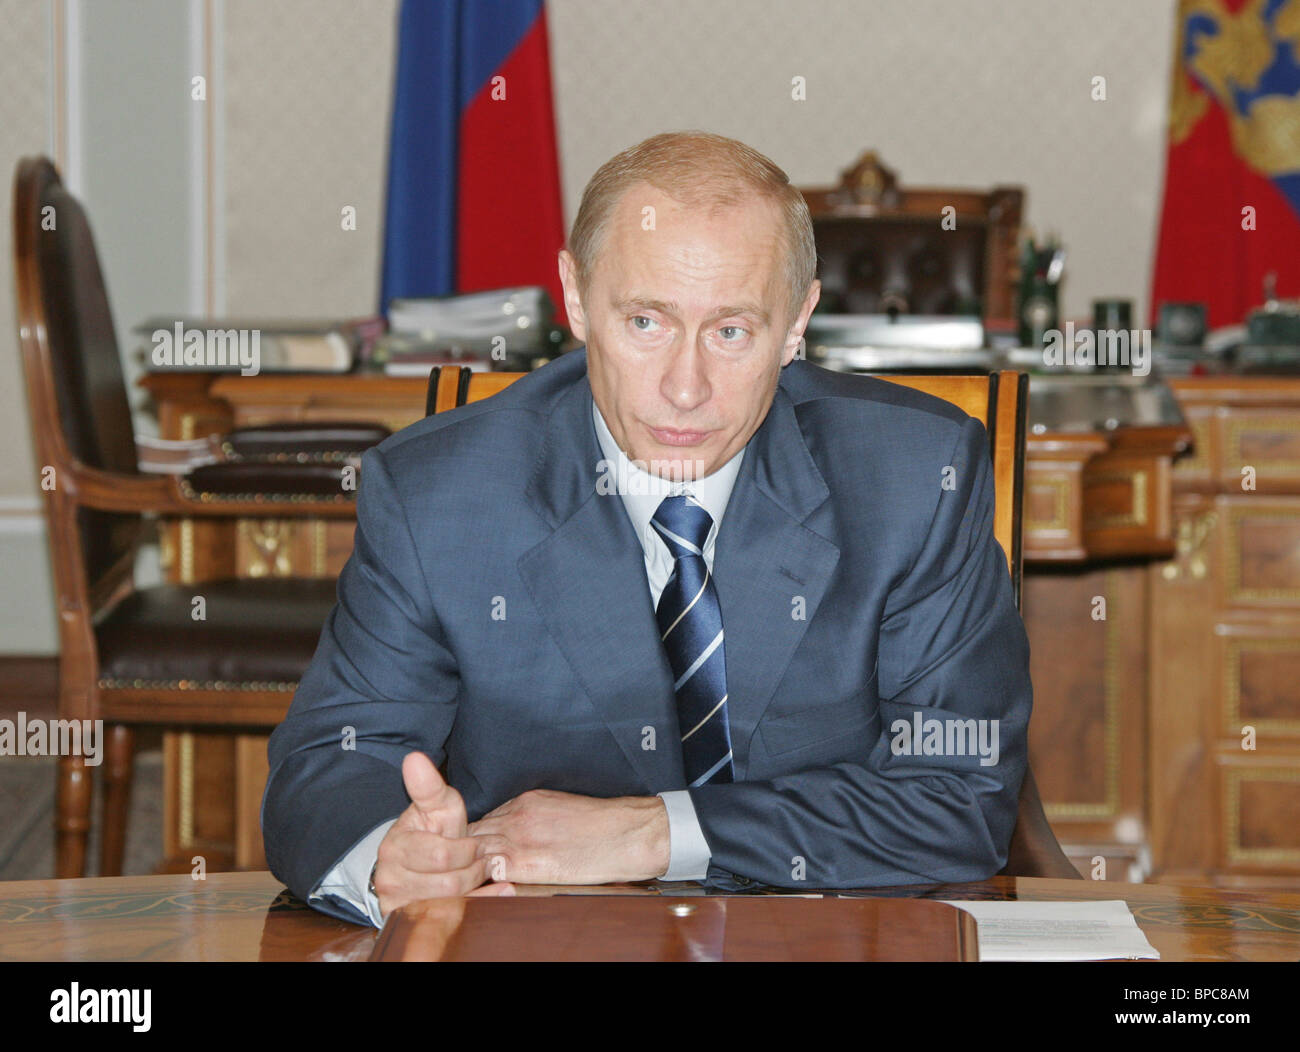 President Vladimir Putin chairs meeting with Security Council members June 30, 2006 - Stock Image